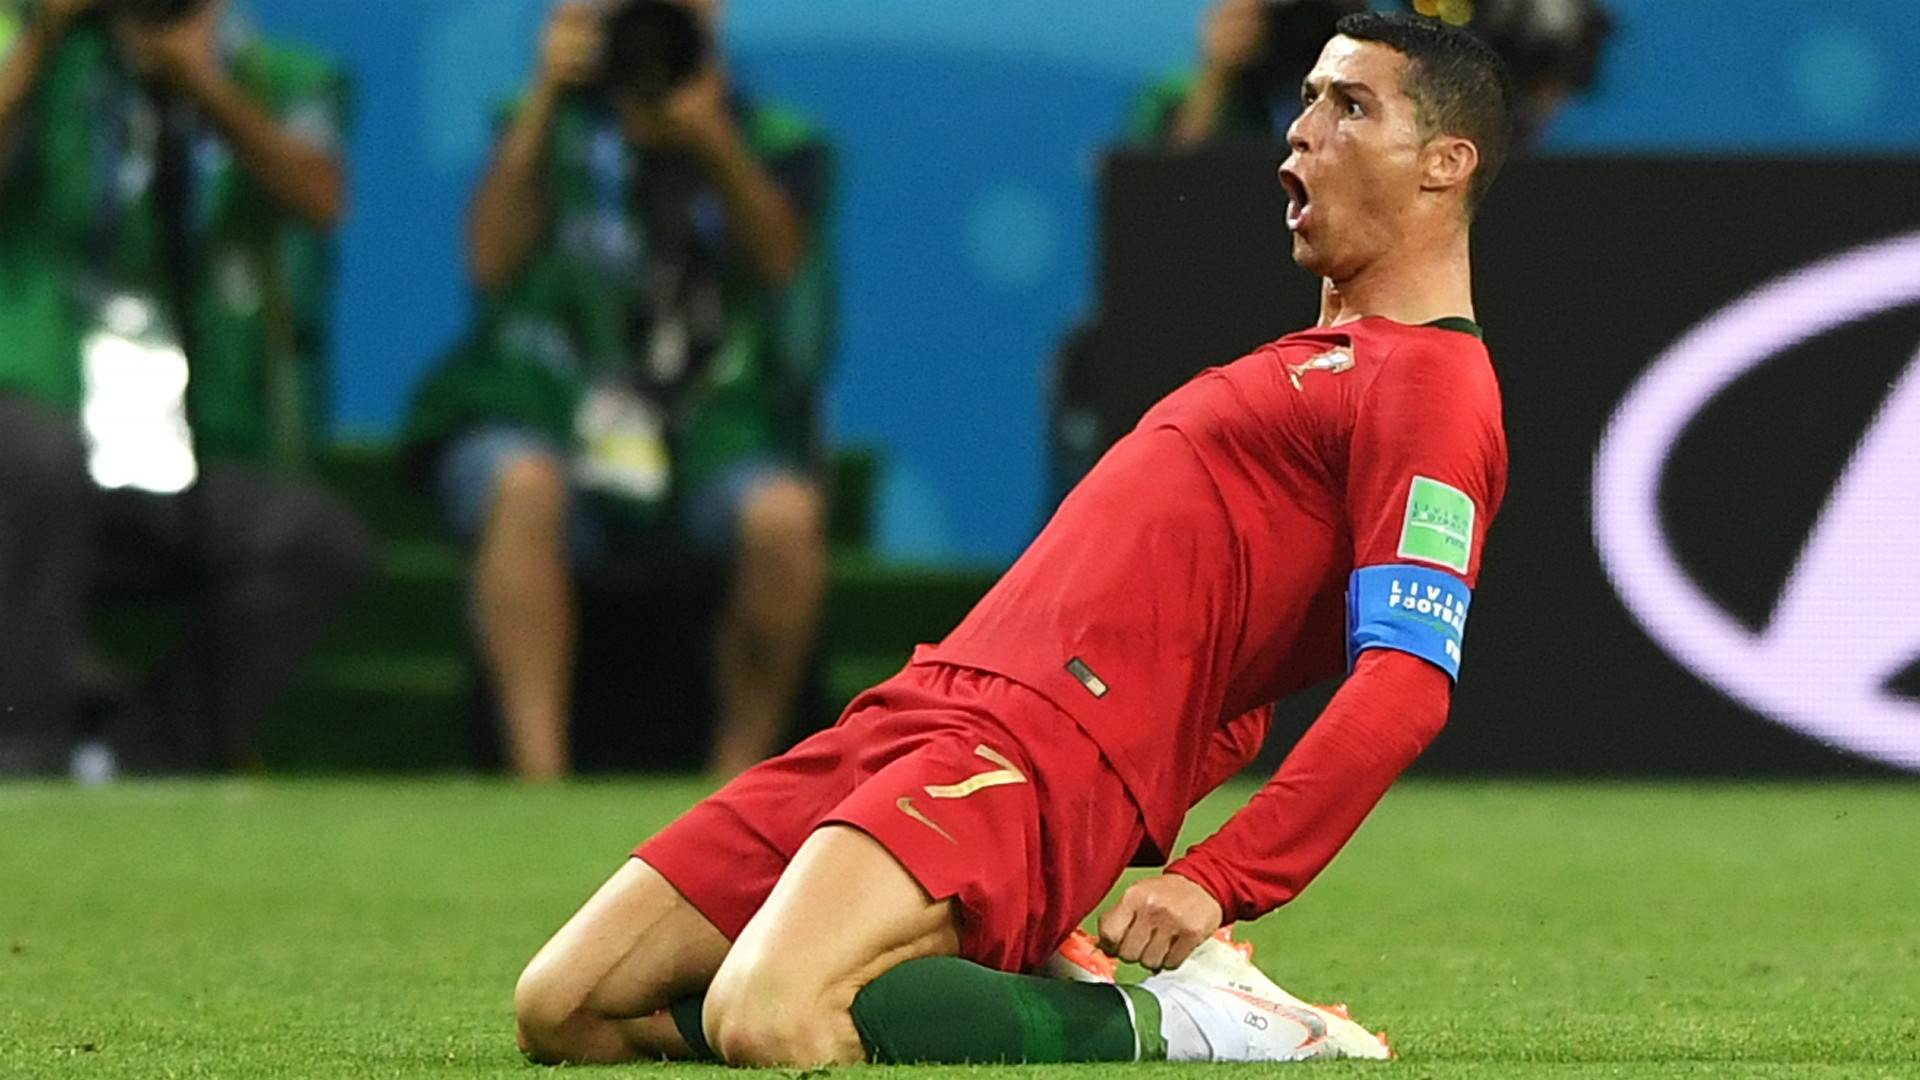 Ronaldo earns Portugal 1-0 win as Morocco's hopes end